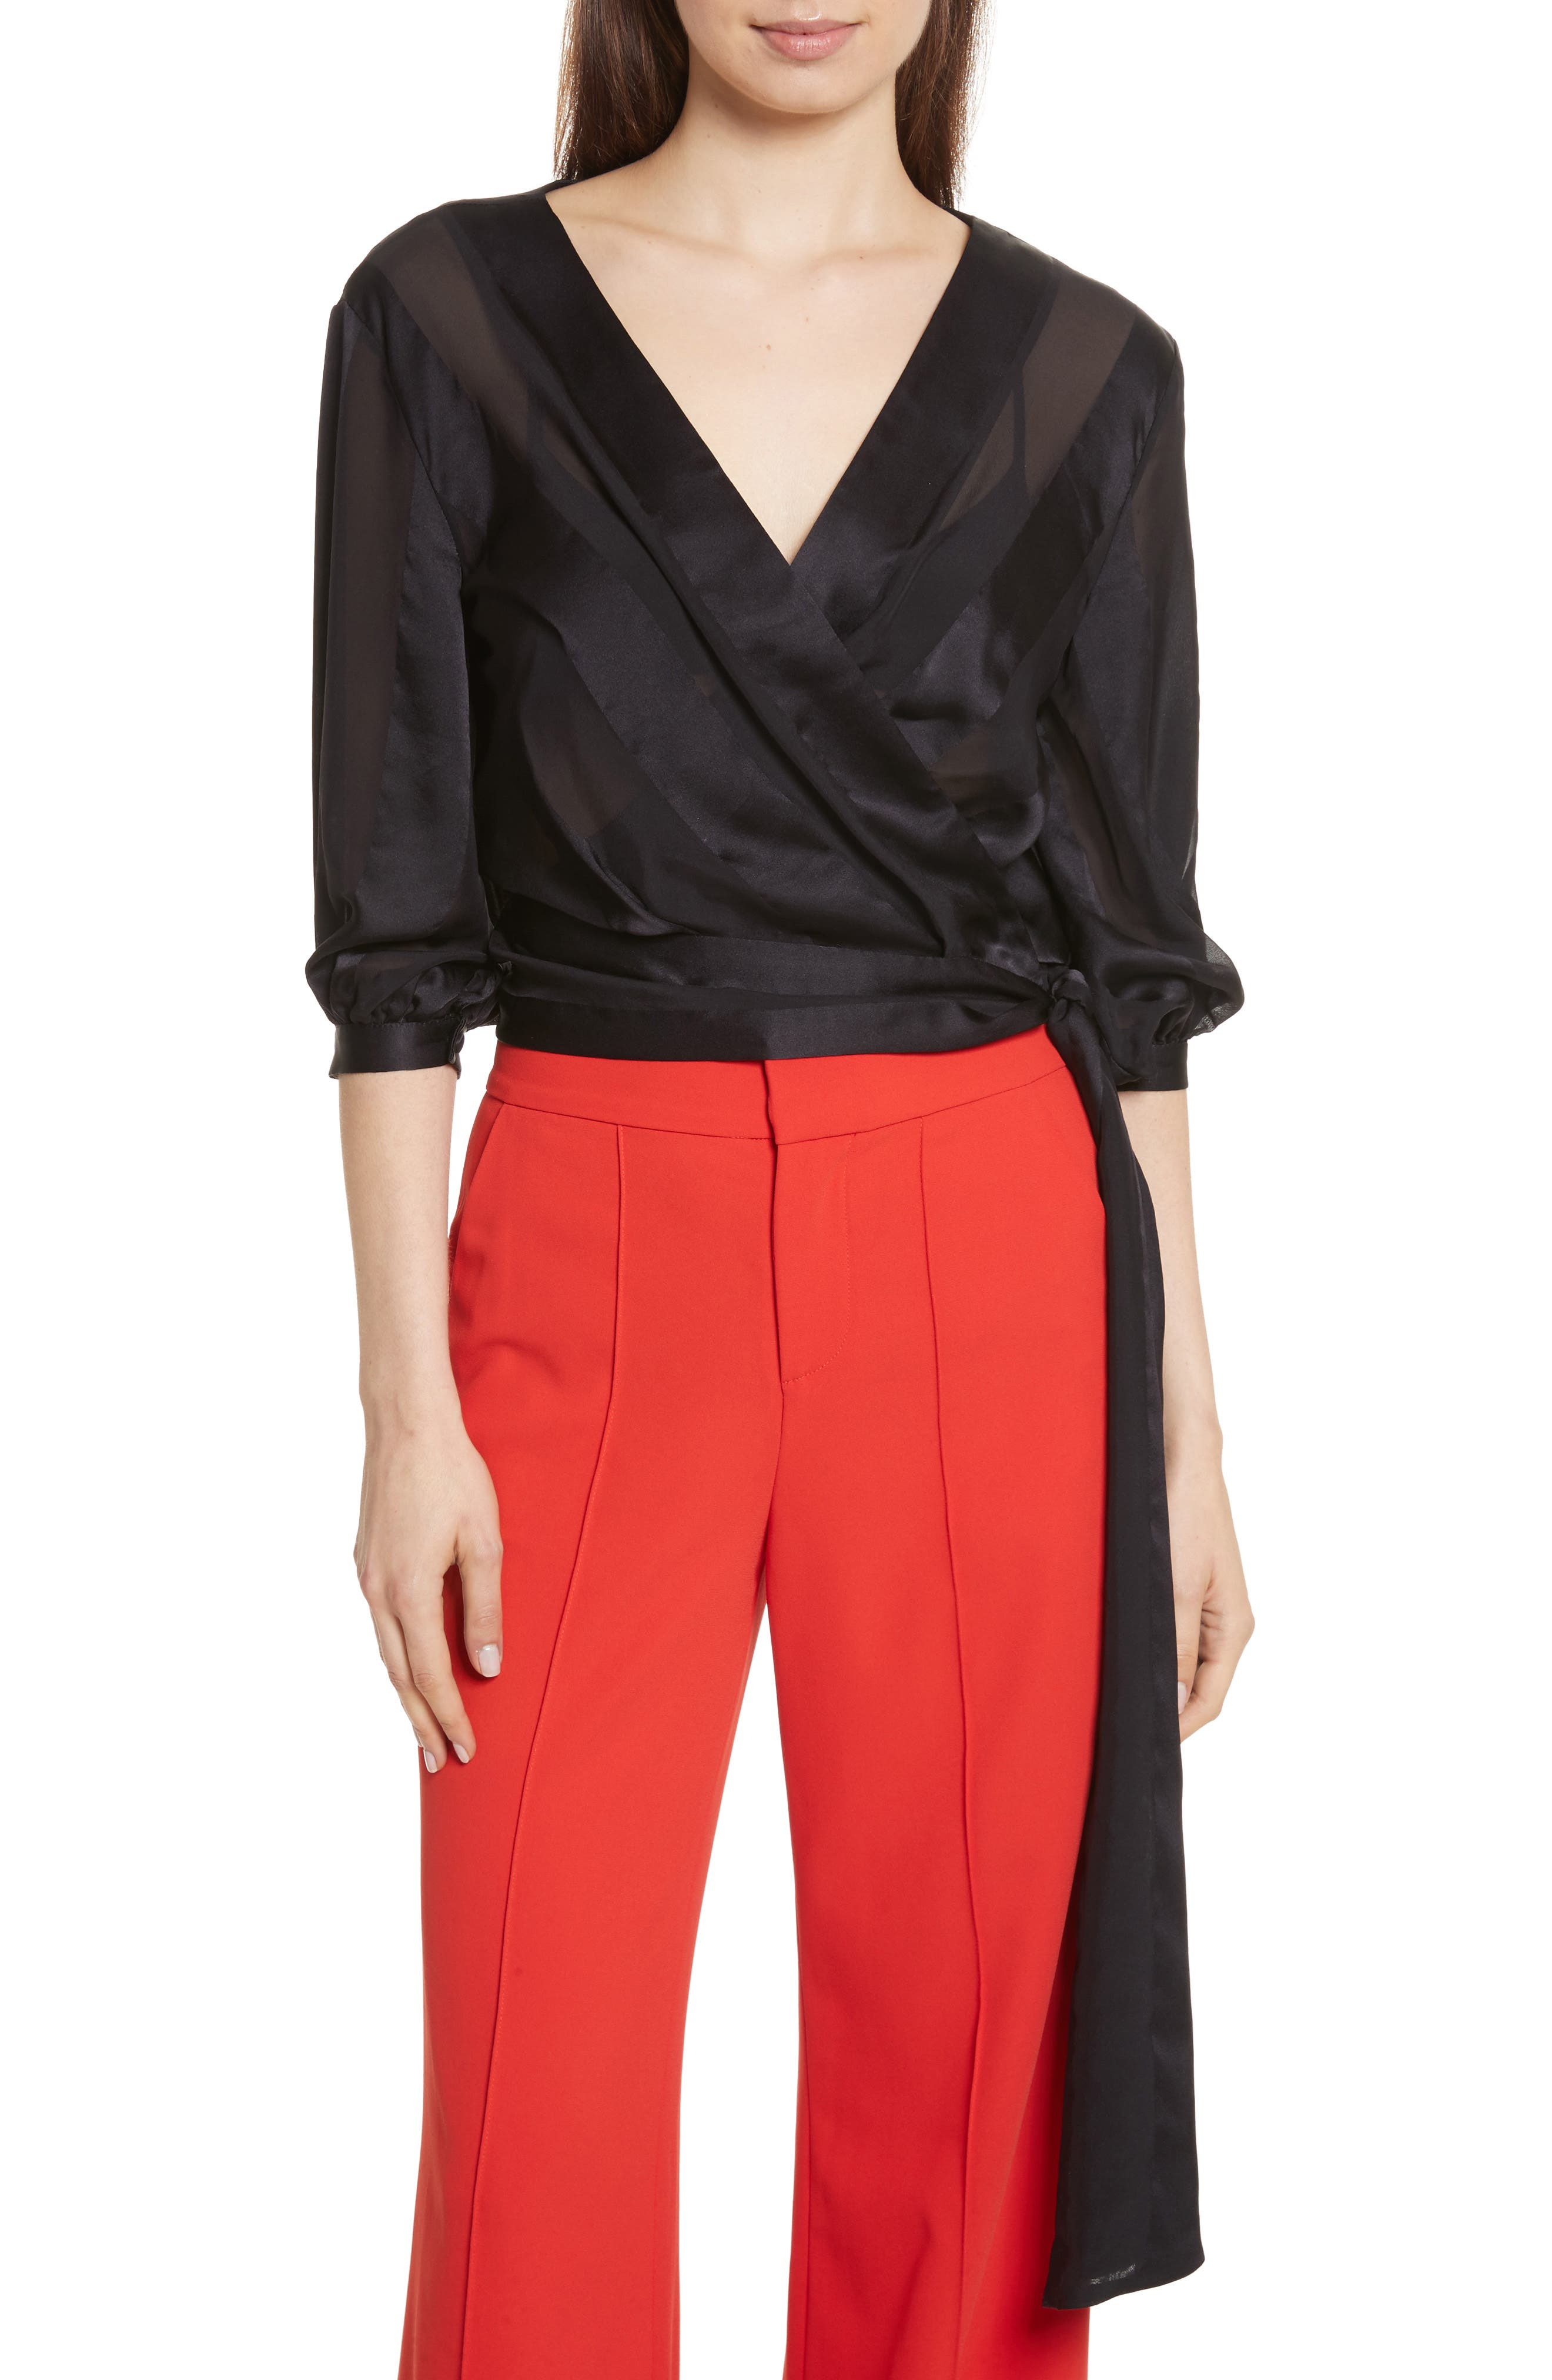 Alternate Image 1 Selected - Alice + Olivia Dyanna Wrap Front Blouson Silk Top